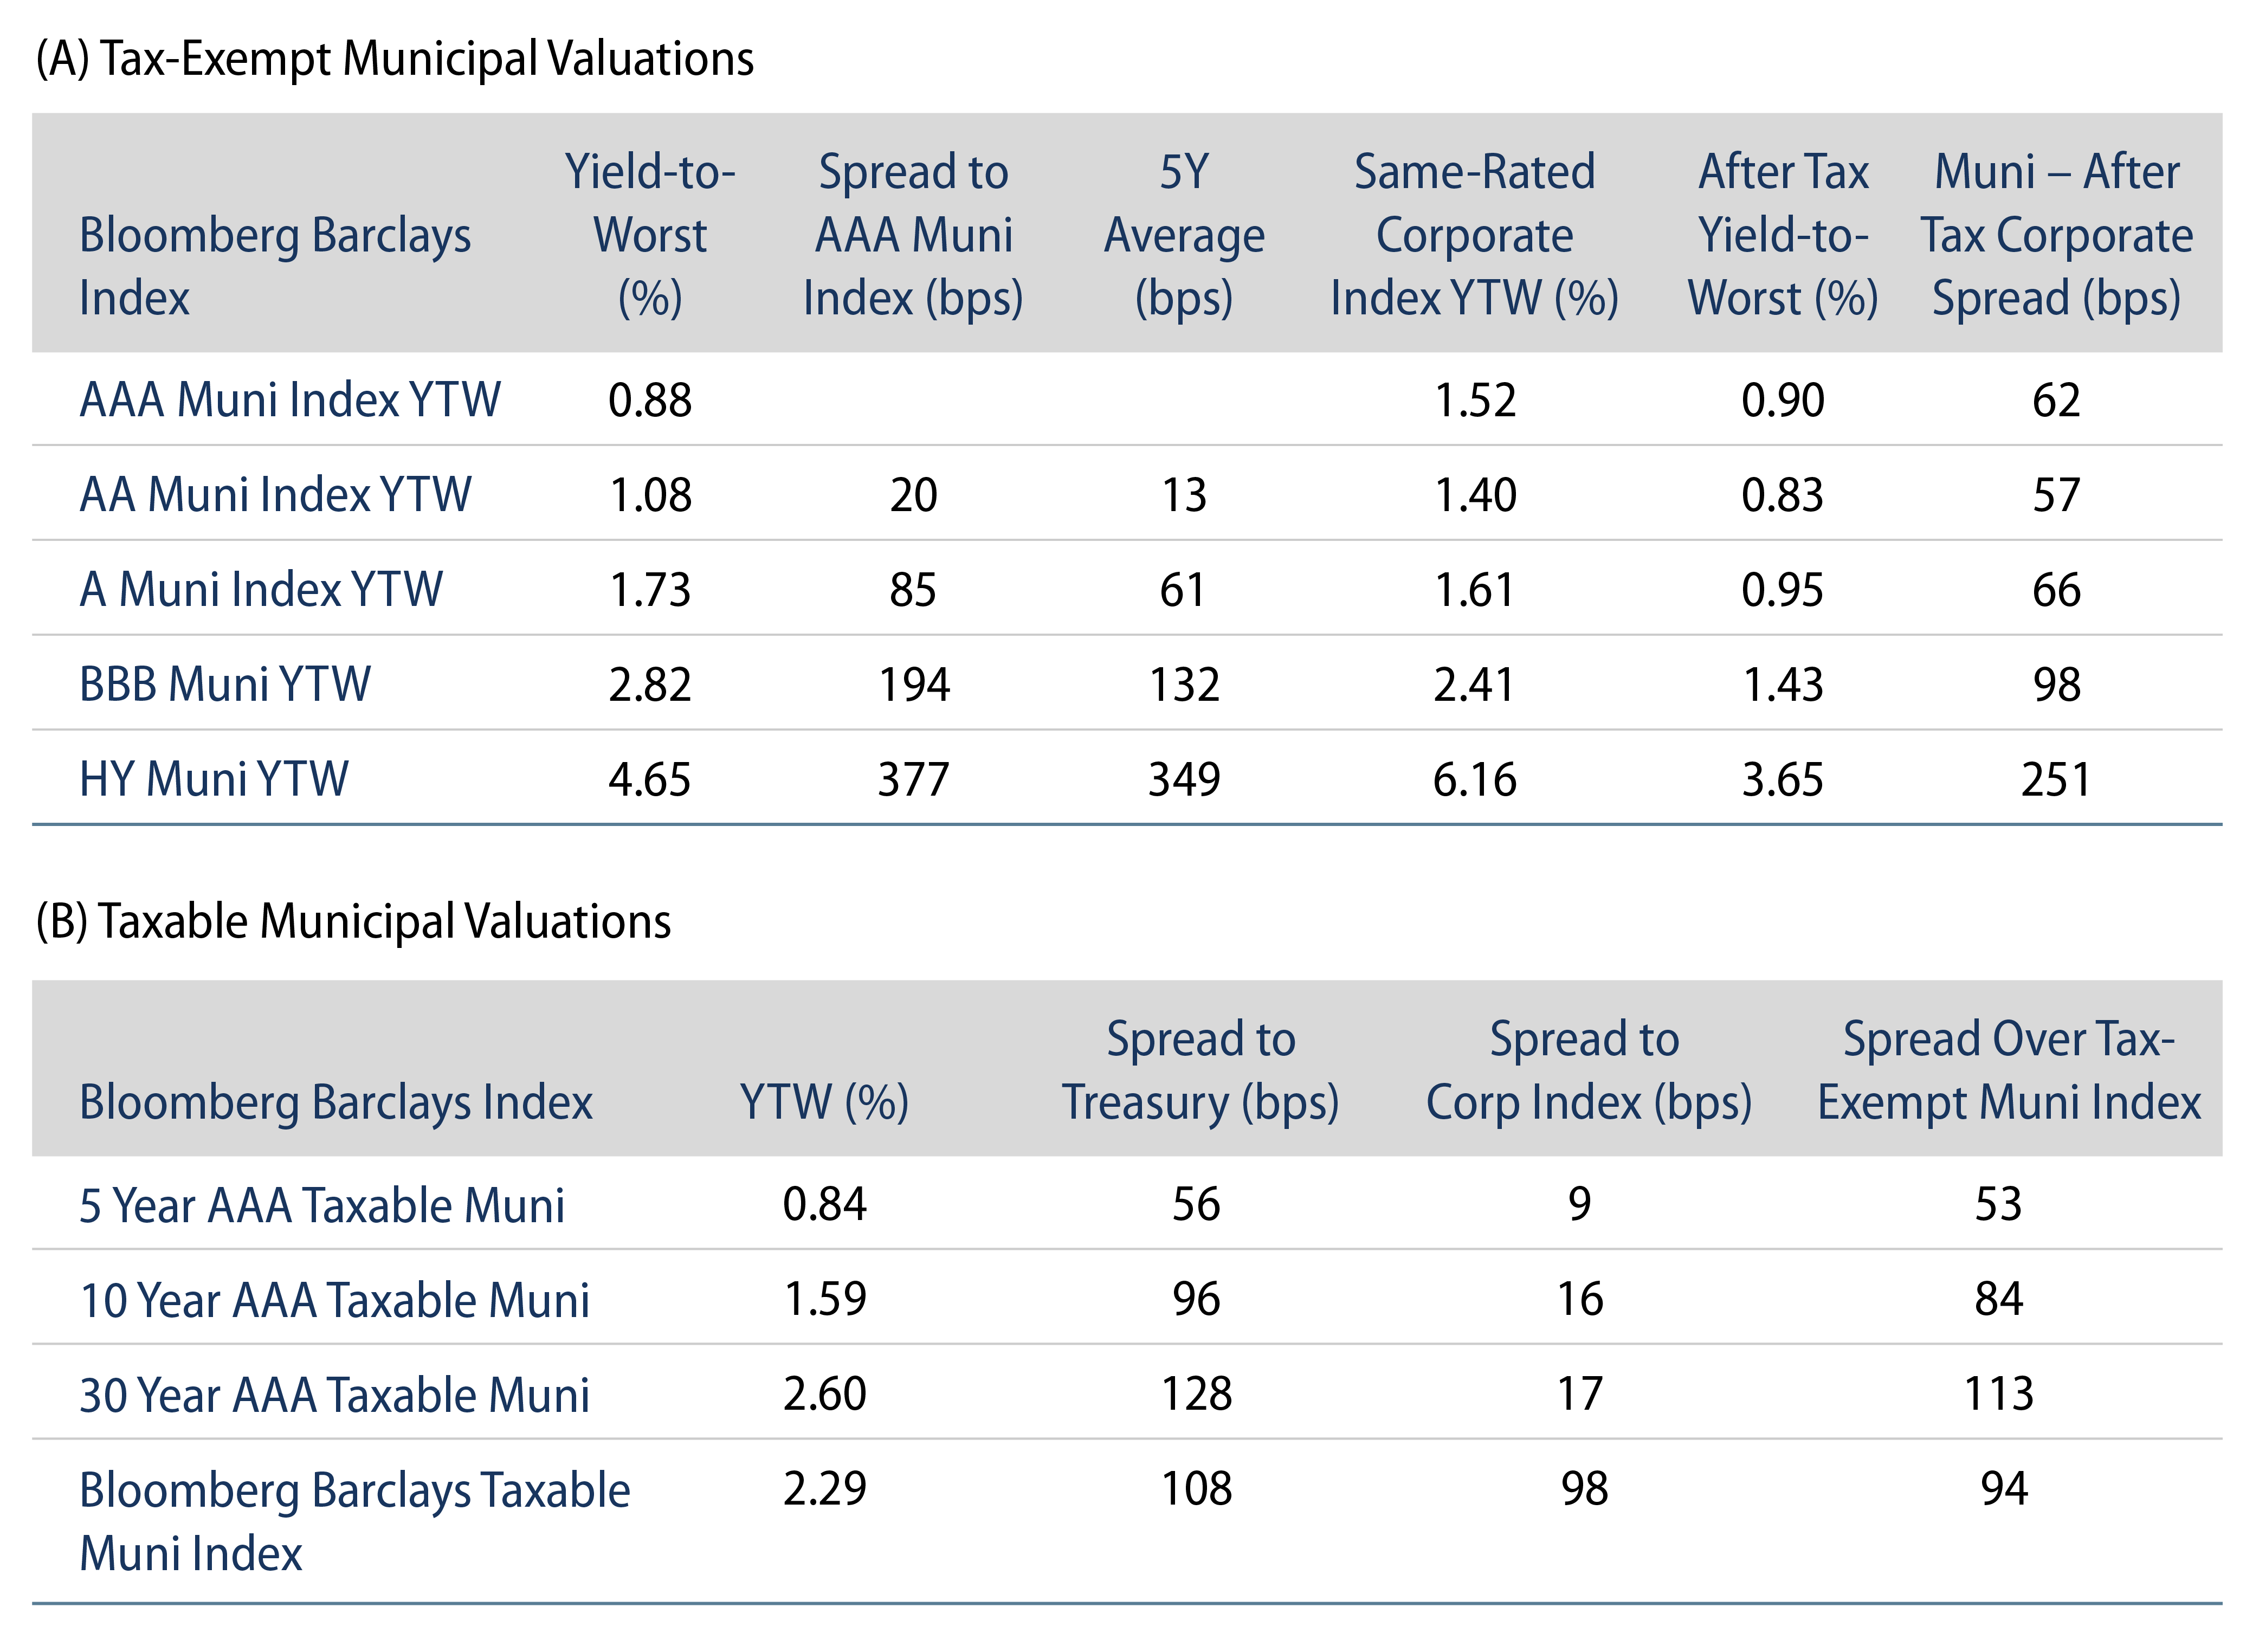 Tax-Exempt and Taxable Municipal Valuations